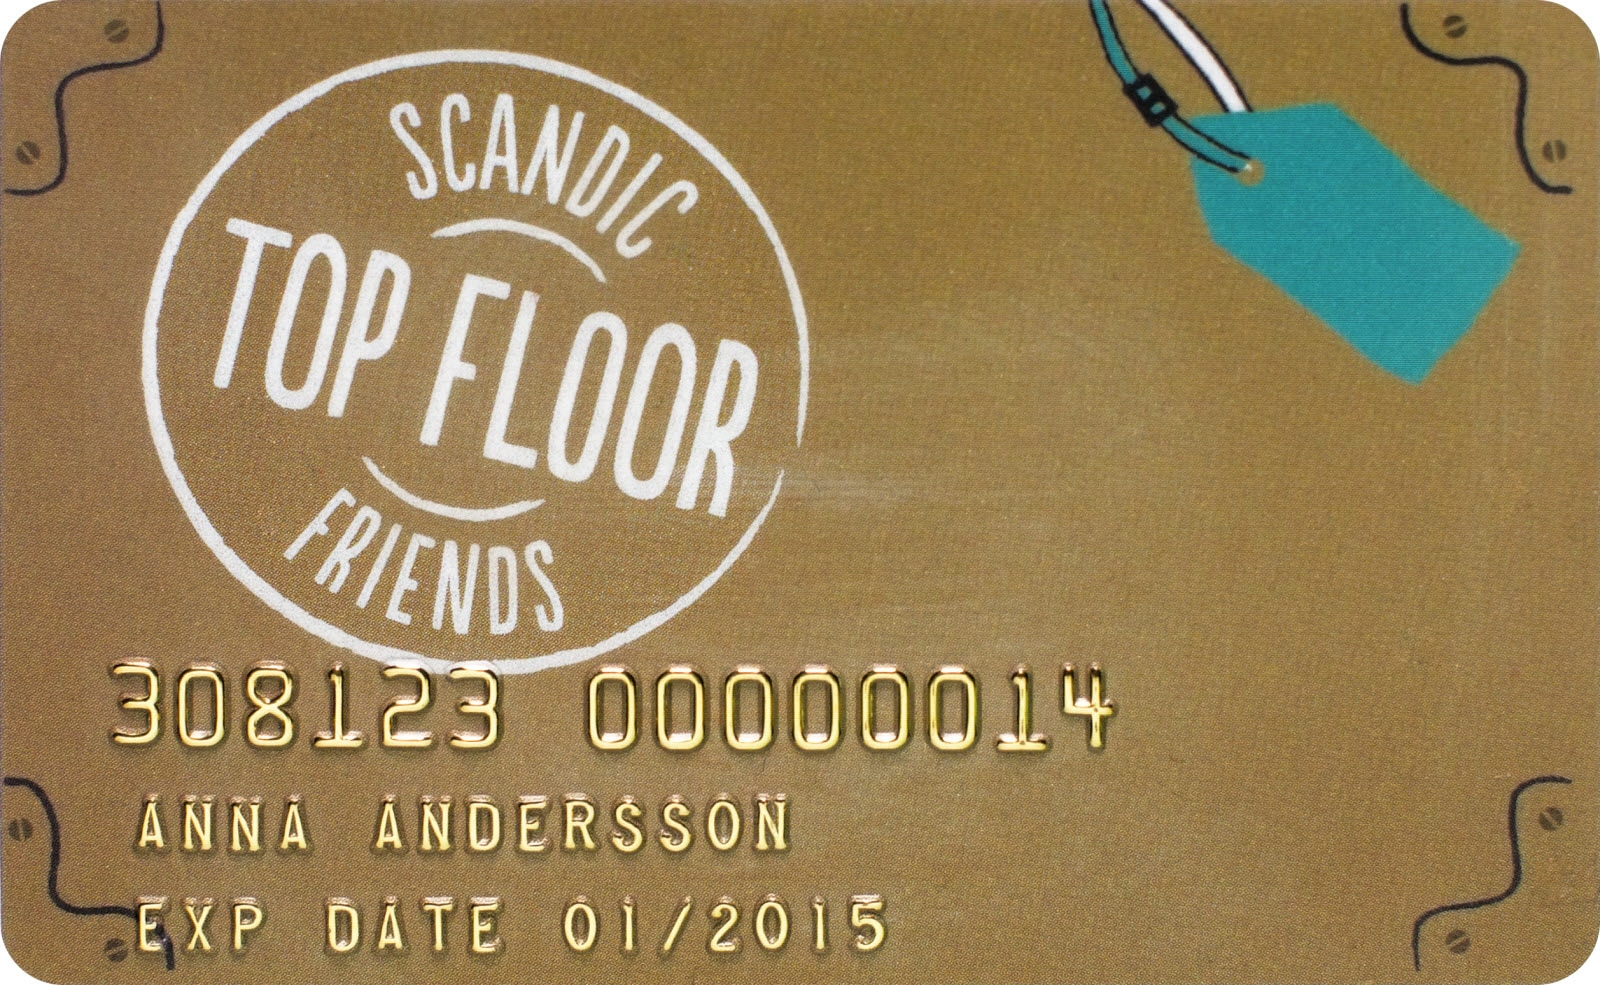 ScandicFriends_TopFloor.jpg